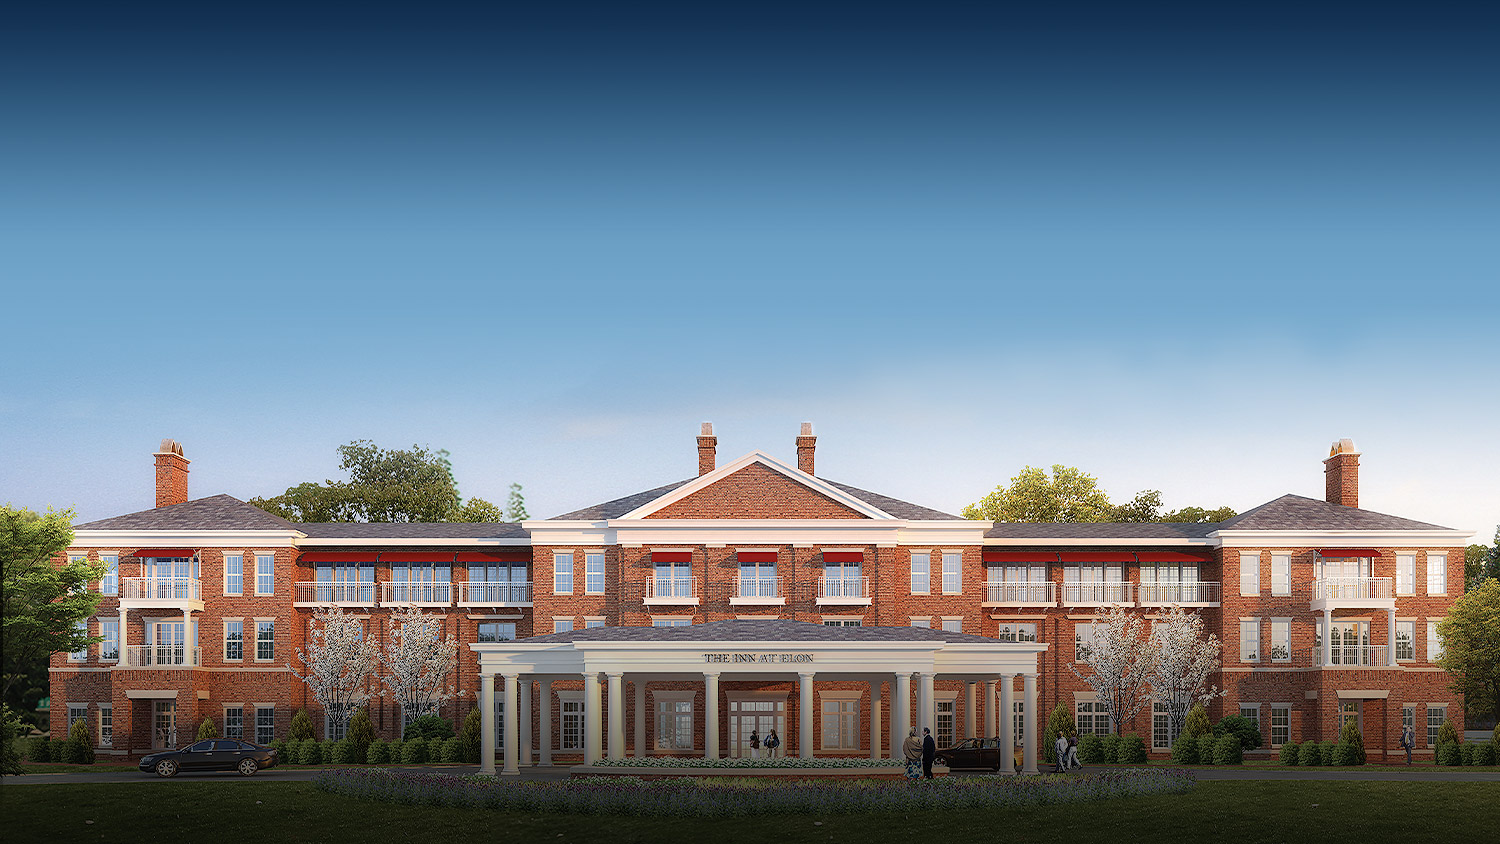 exterior of the inn at elon with red brick, symmetric design, and white columns